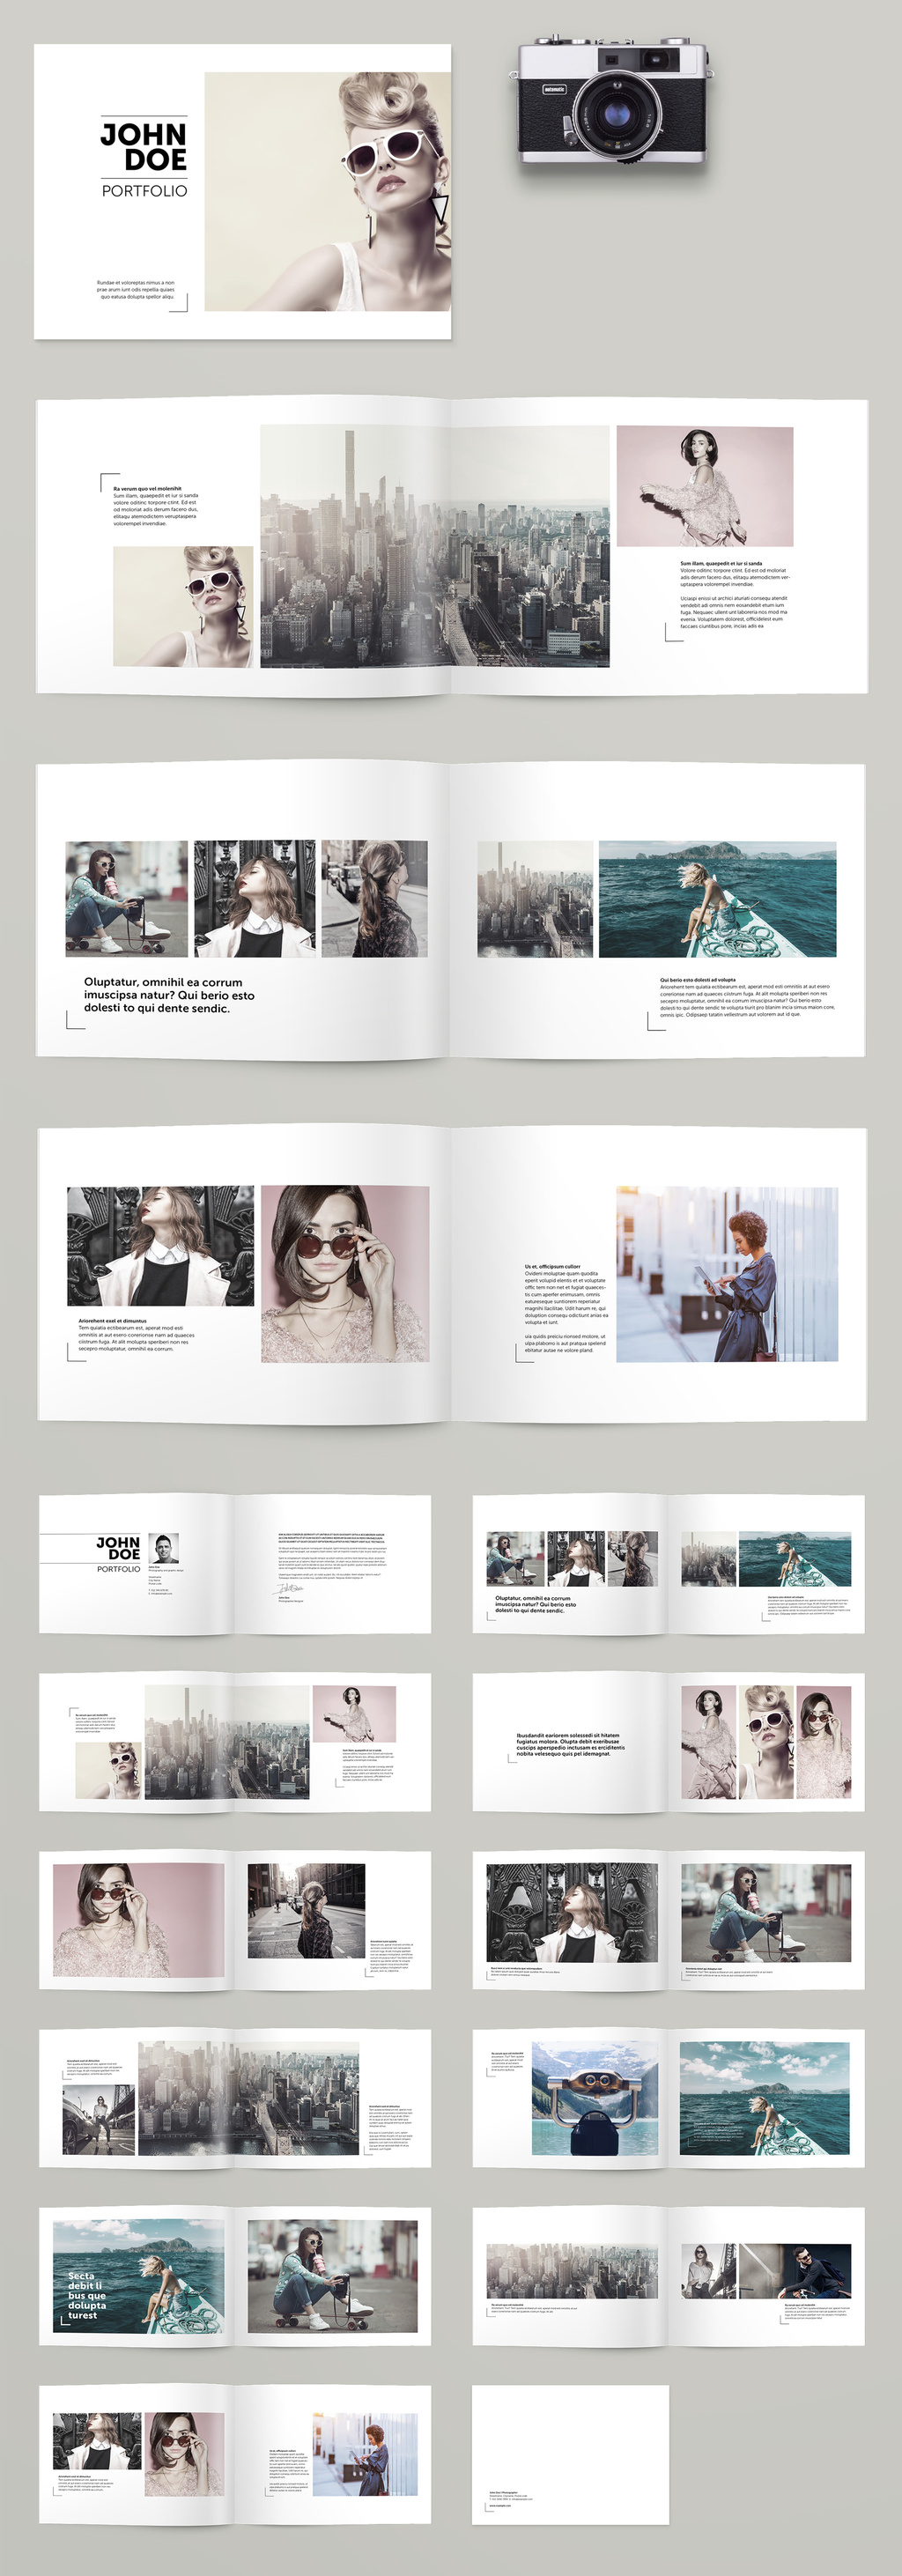 Portfolio brochure layout available as fully editable Adobe InDesign template.